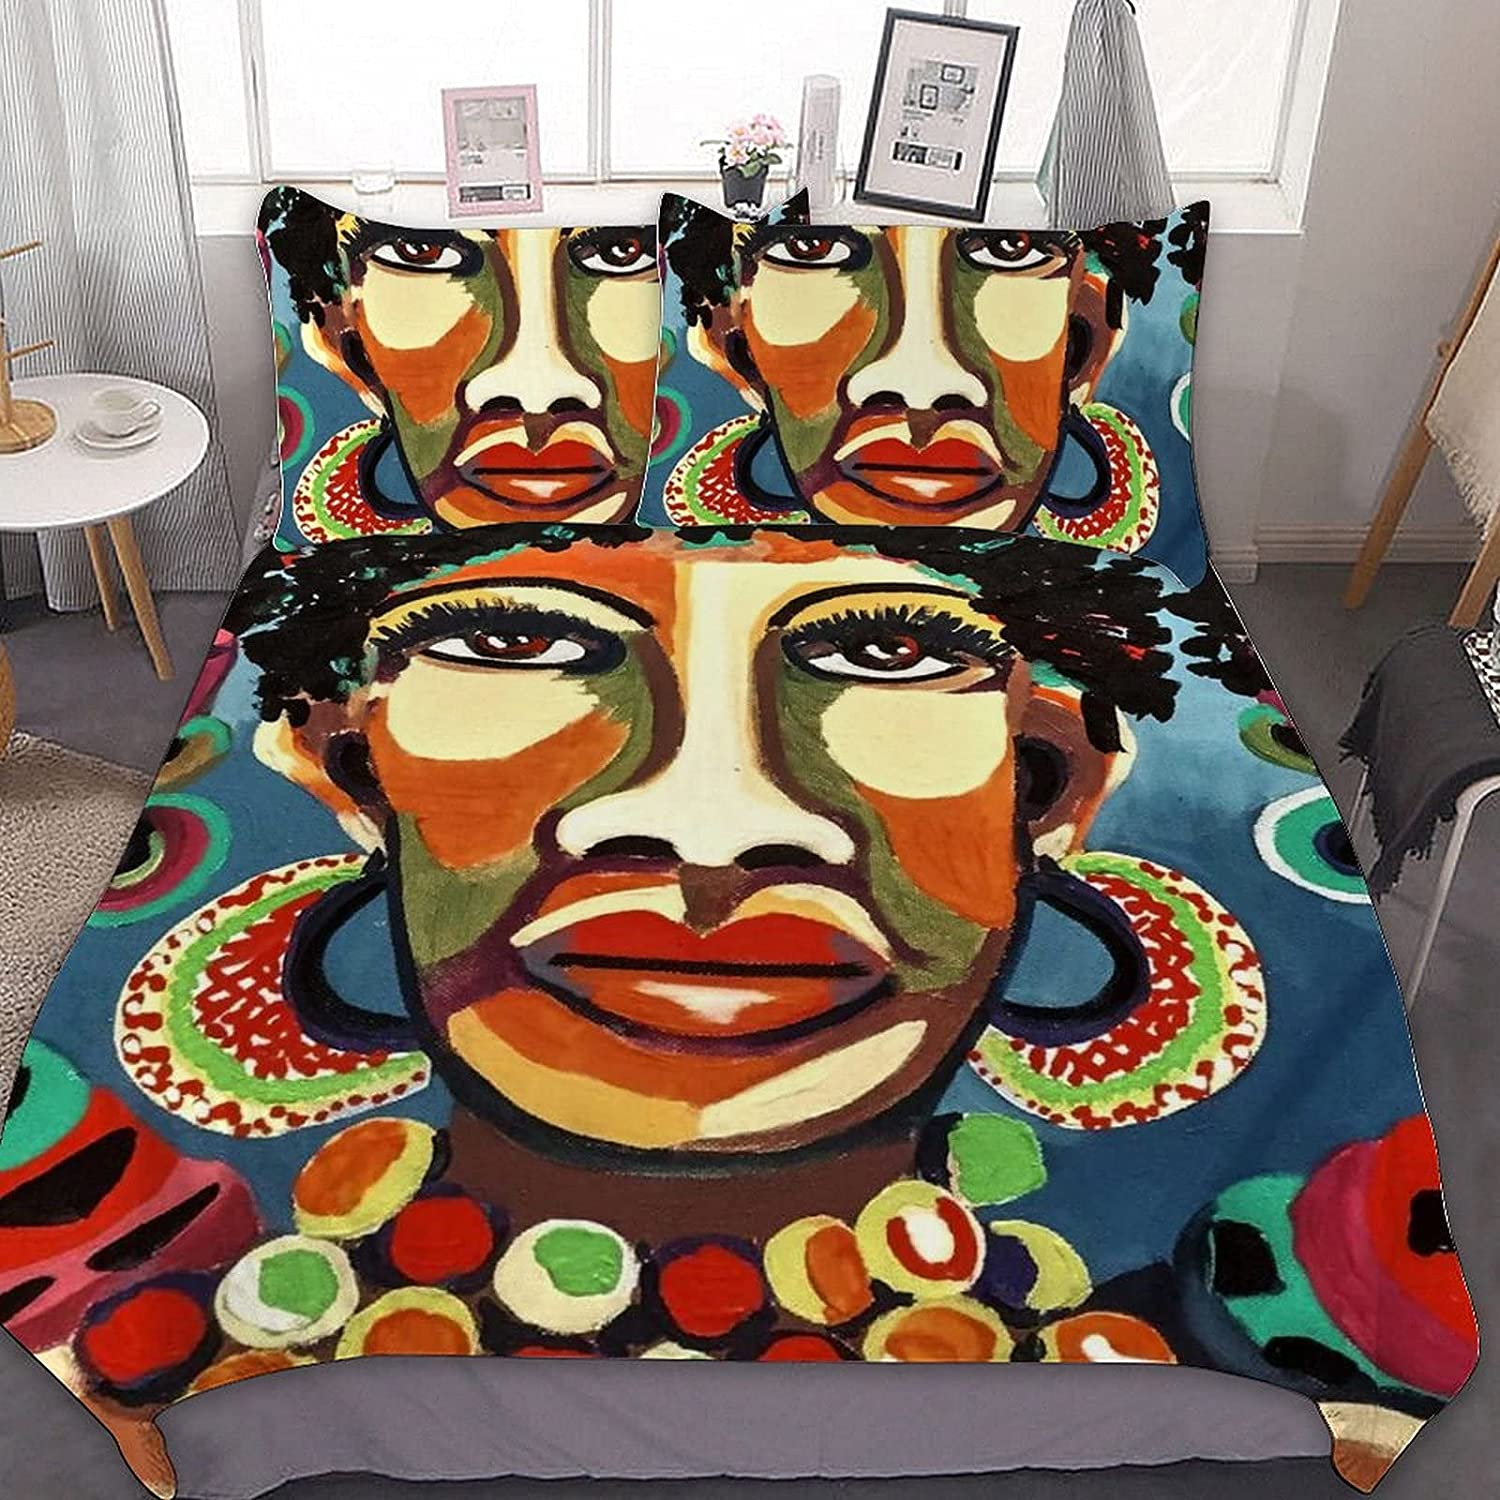 Popular PSSMMAL African Art 3 Pieces Bedding Queen for Sets Fees free Ki Comforter